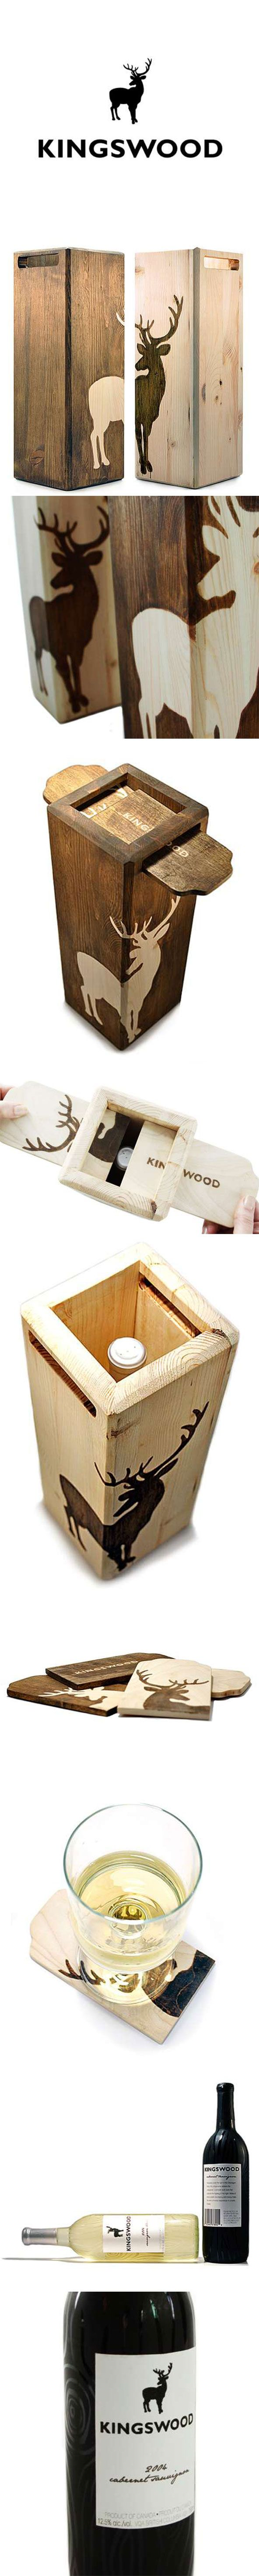 Wild Wood Branding | #packing #packaging #verpackung #creative #paper #marketing #corporate #design repinned by www.BlickeDeeler.de | Follow us on www.facebook.com/BlickeDeeler